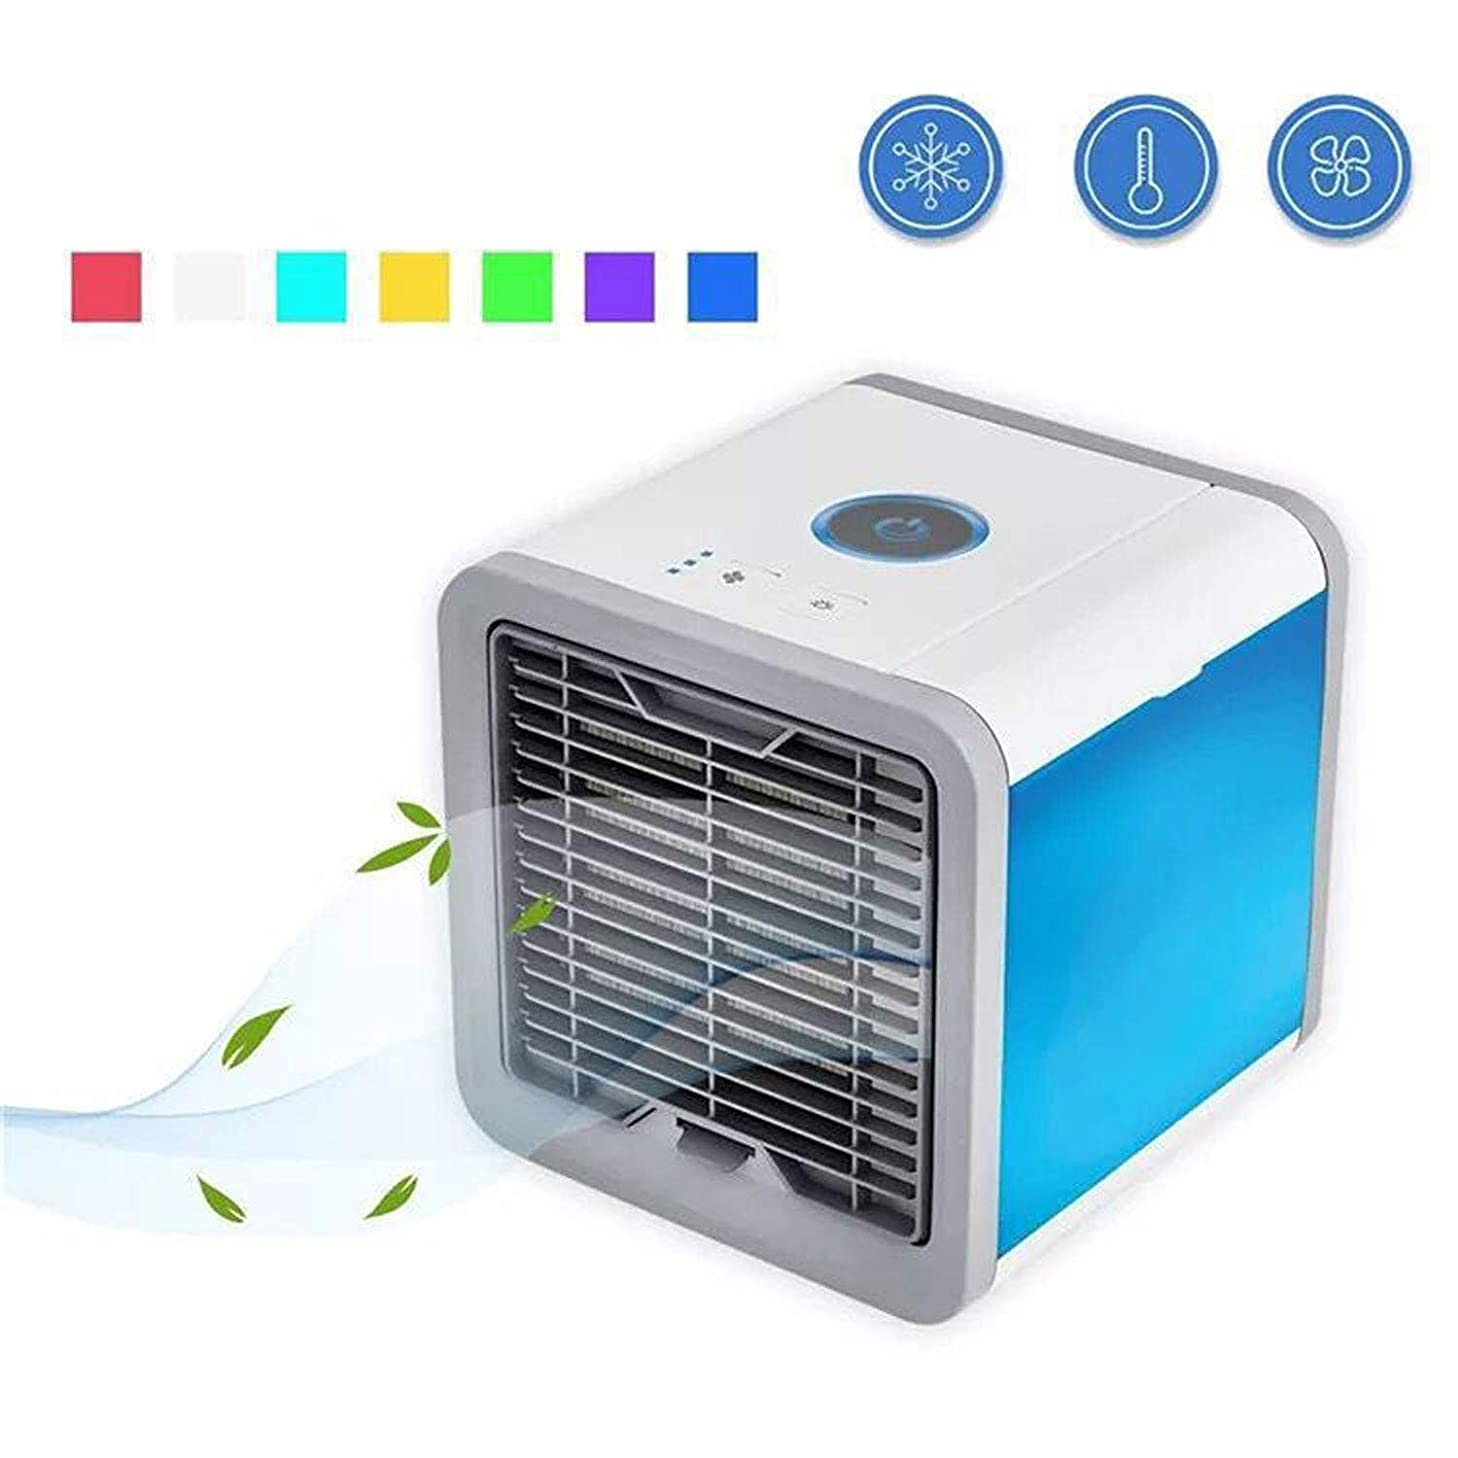 KEYUAN Evaporative Portable Air Conditioner Household air Cooler Humidifiers USB Mini Table Fan for Office